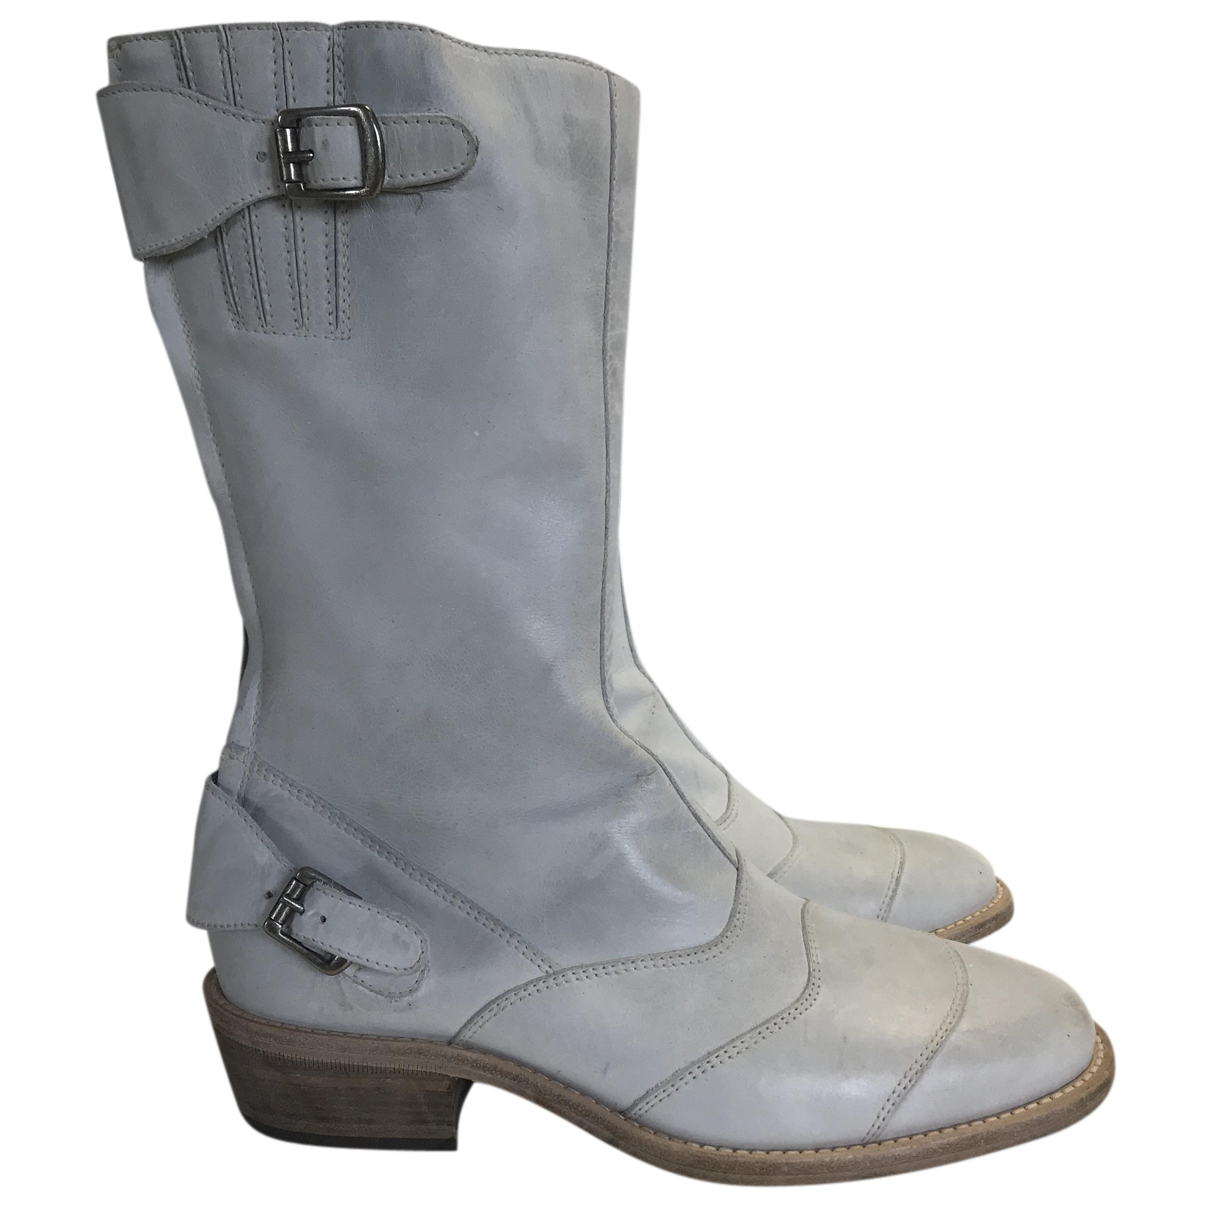 Belstaff N White Leather Ankle boots for Women 38 EU